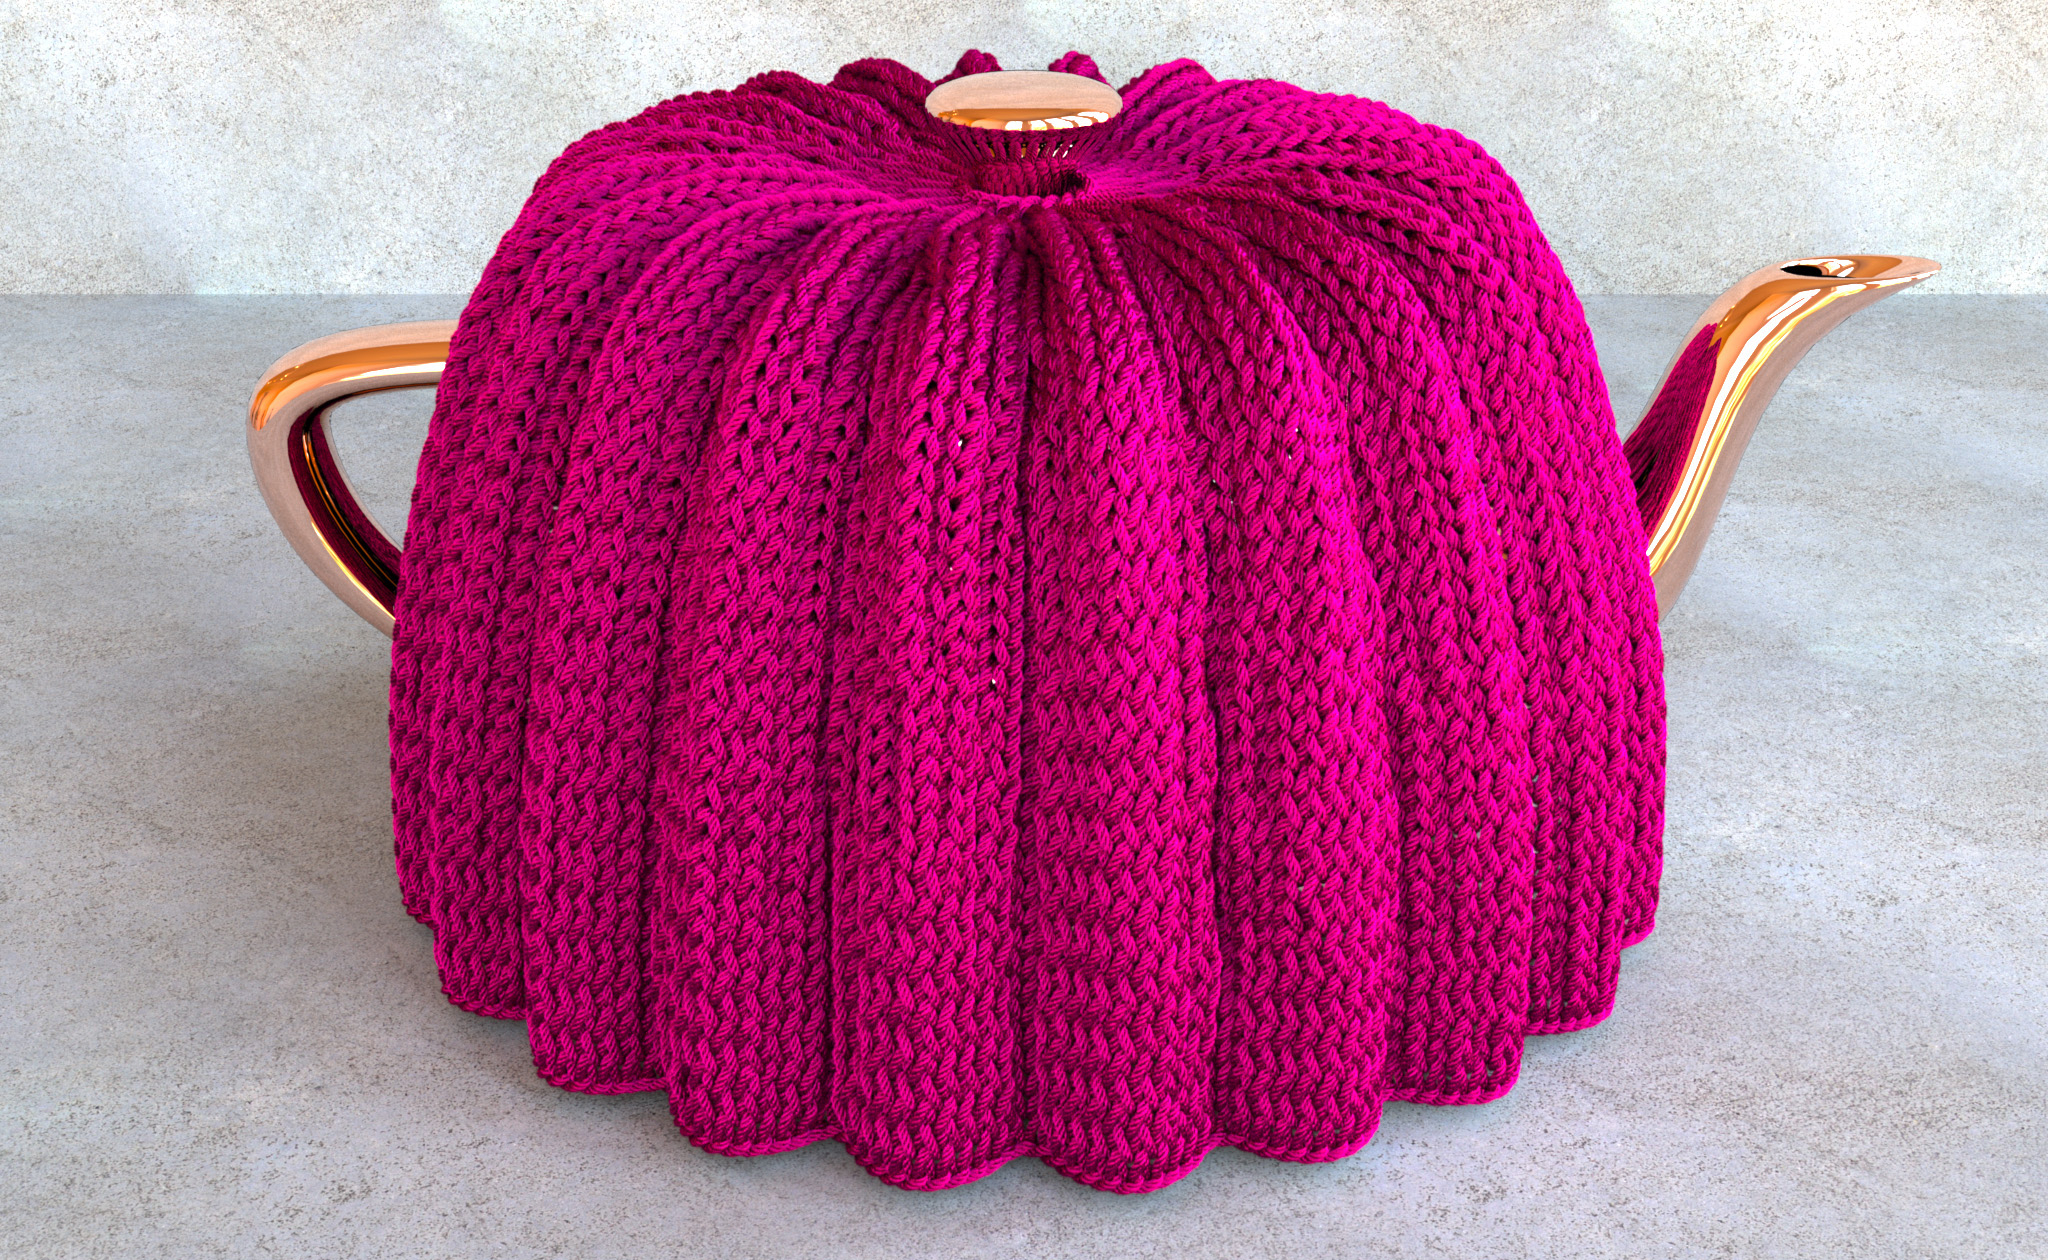 Tea Cosy Knitting Patterns Easy Knitted Tea Cosy Patterns Browse Patterns